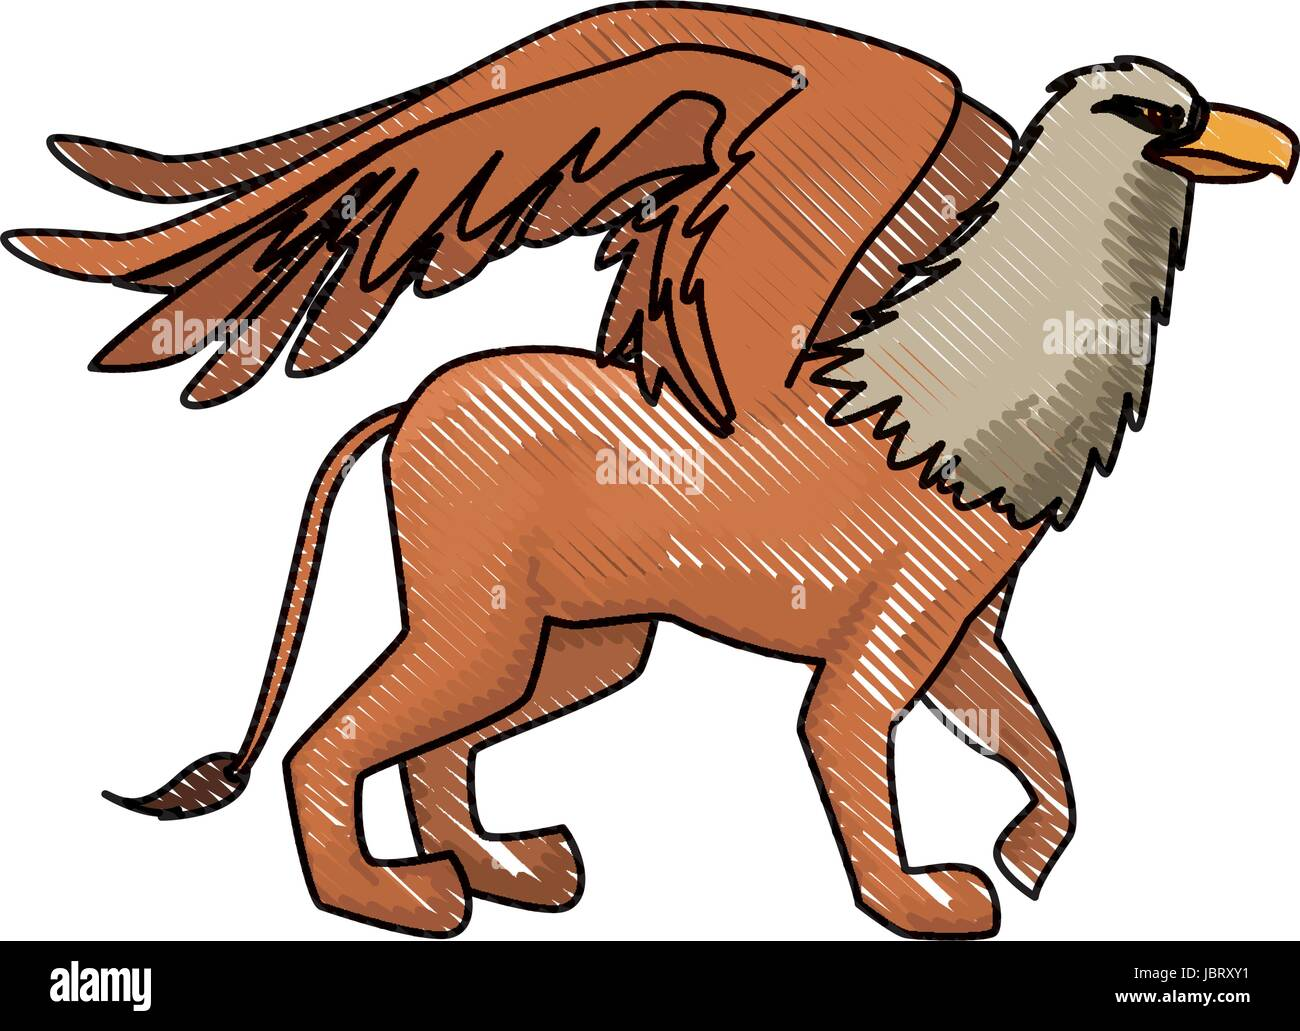 greek mythical creature stock photos u0026 greek mythical creature